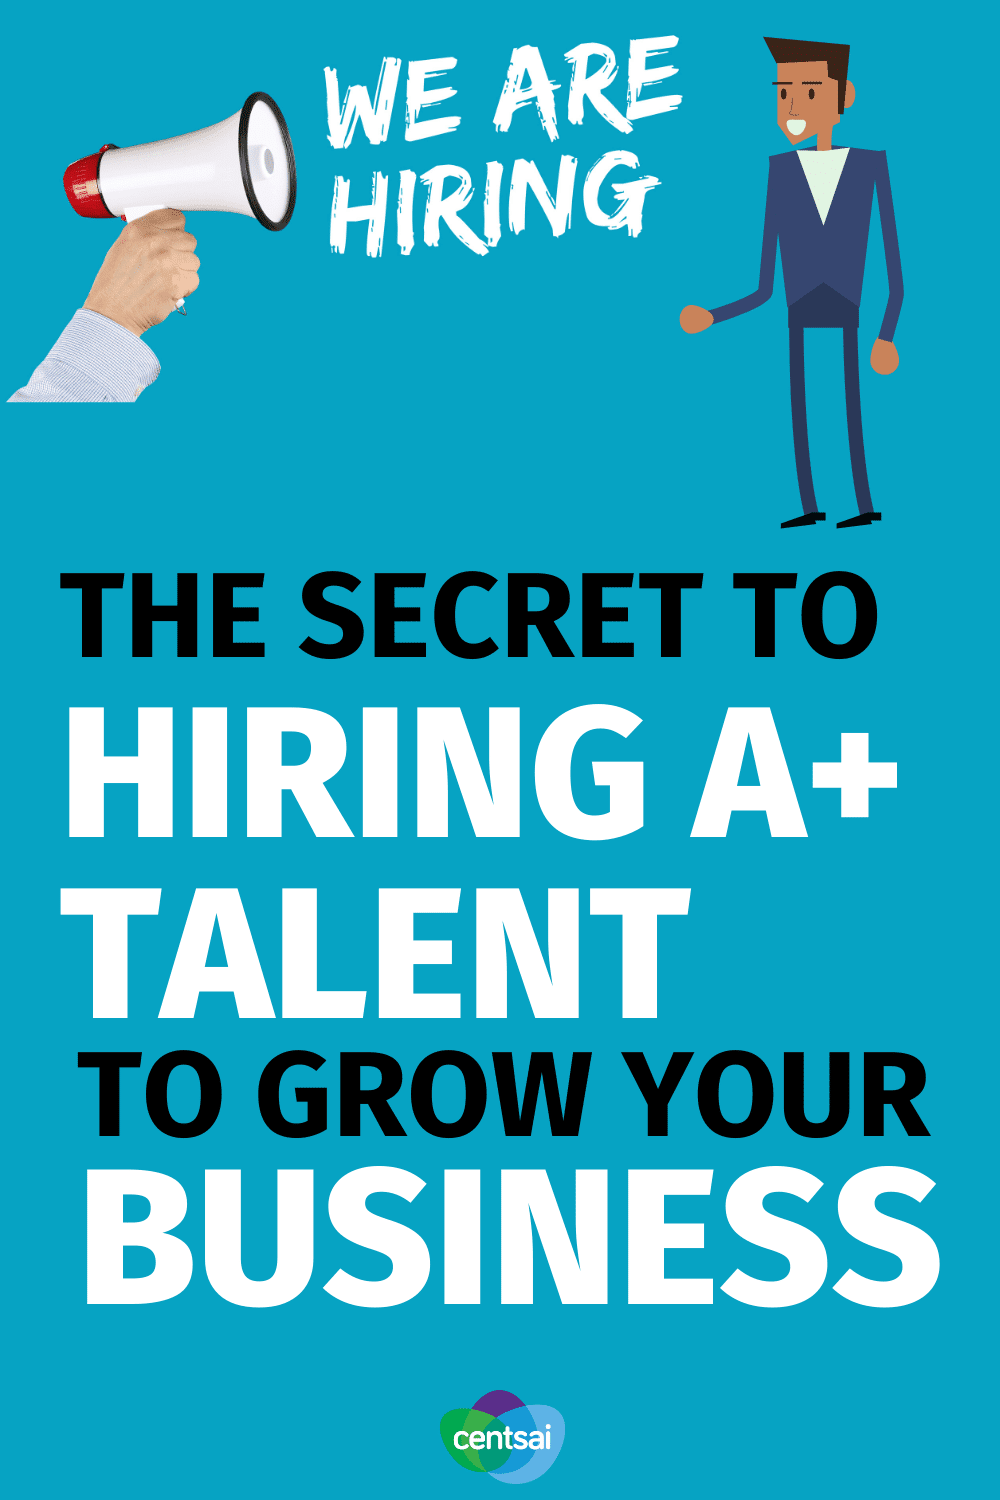 The Secret to Hiring A+ Talent to Grow Your Business